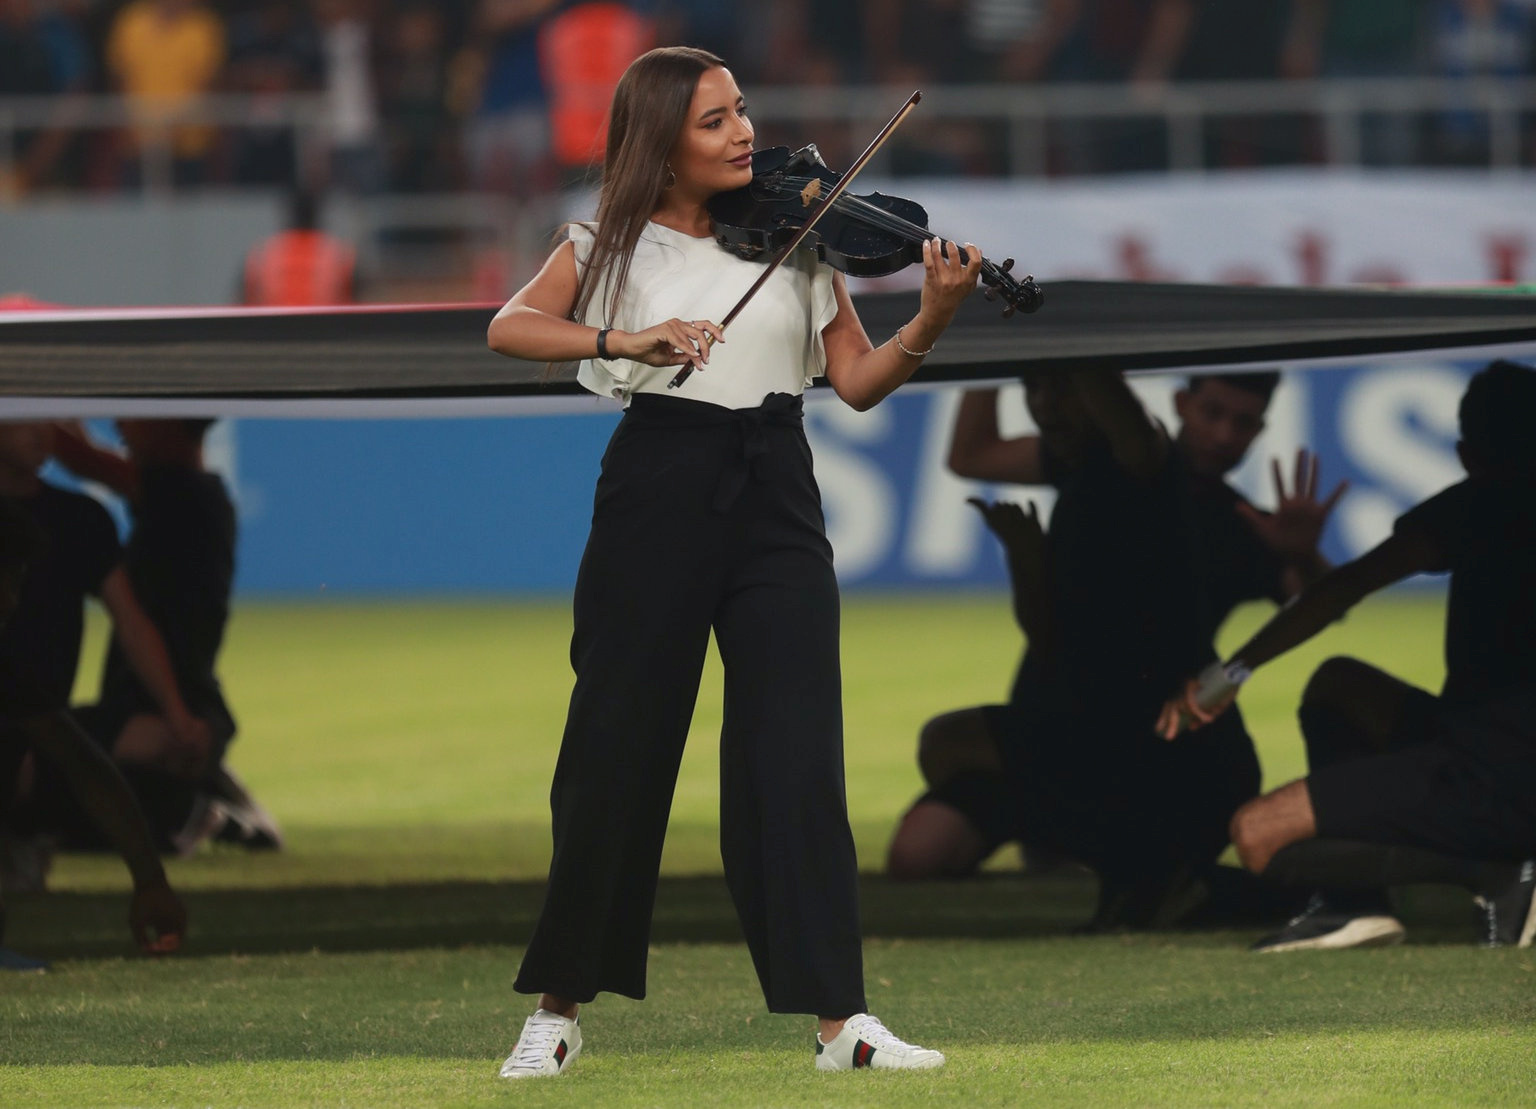 Joelle Saade, violinist, plays Iraq's national anthem during an opening ceremony of the West Asia Football Federation Championship at Kerbala Stadium in the holy city of Kerbala, Iraq July 30, 2019. Picture taken July 30, 2019. REUTERS/Stringer